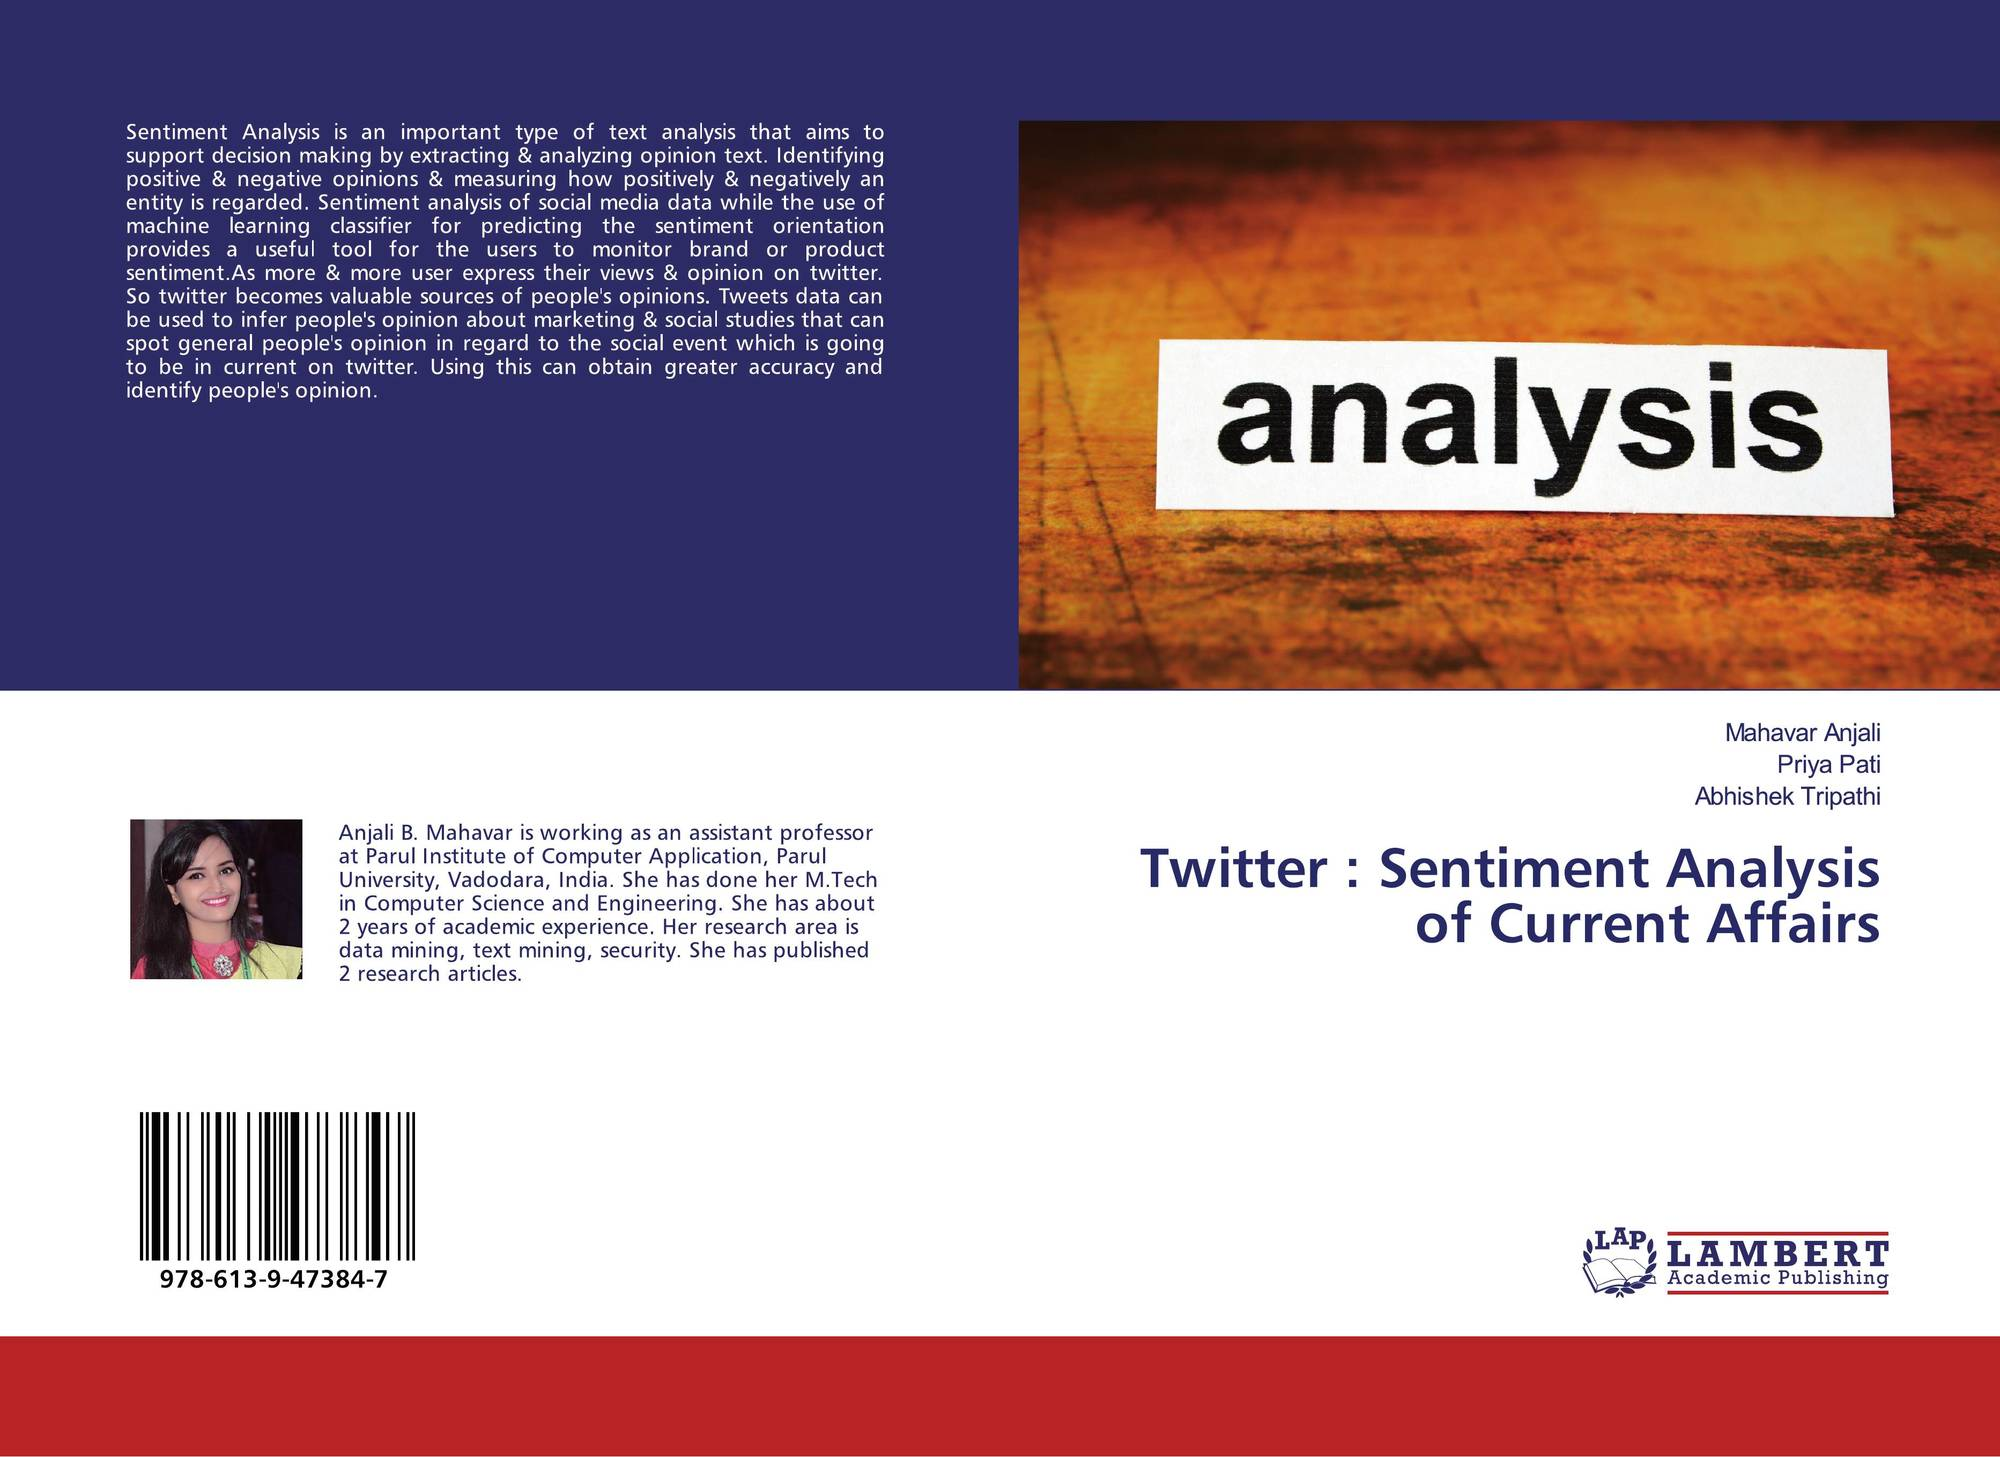 Twitter : Sentiment Analysis of Current Affairs, 978-613-9-47384-7